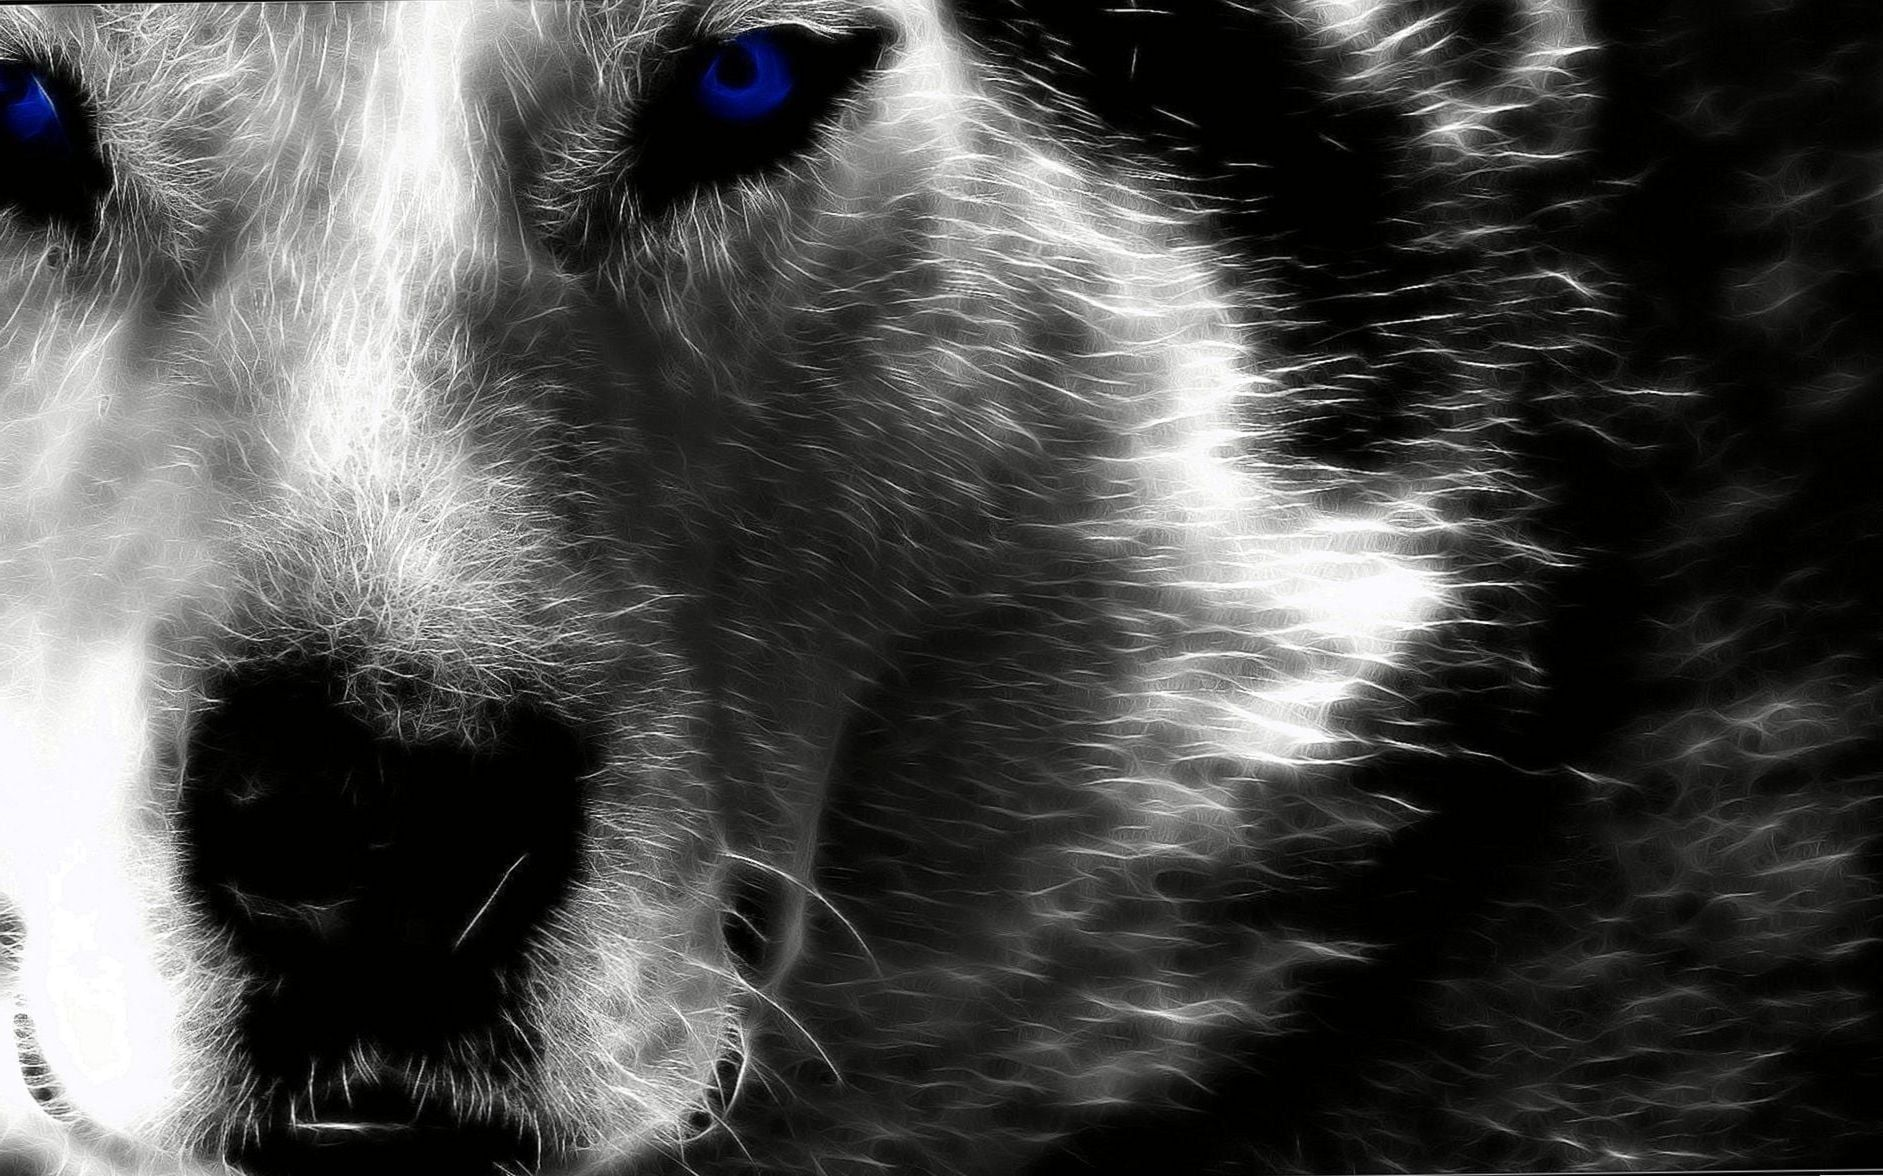 Alpha Wolf Hd Wallpapers Alpha Wolf Hd Wallpapers Wolf Wallpaper Hd Wallpaper Wolf Images